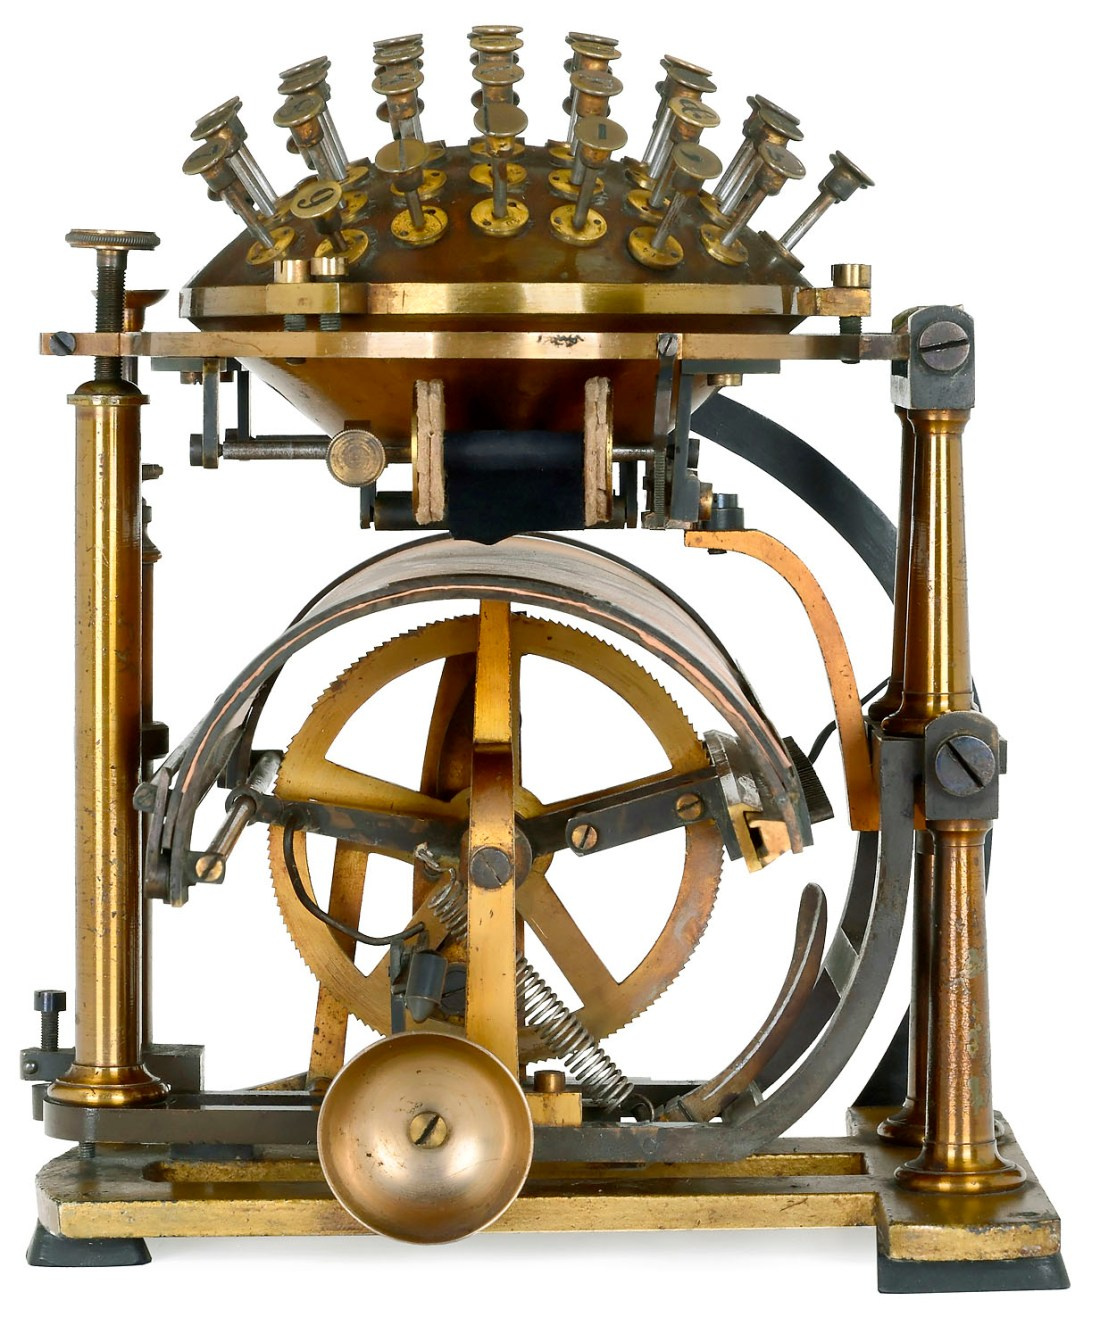 """A Malling-Hansen """"Writing Ball"""", an early typewriter, shown in profile."""